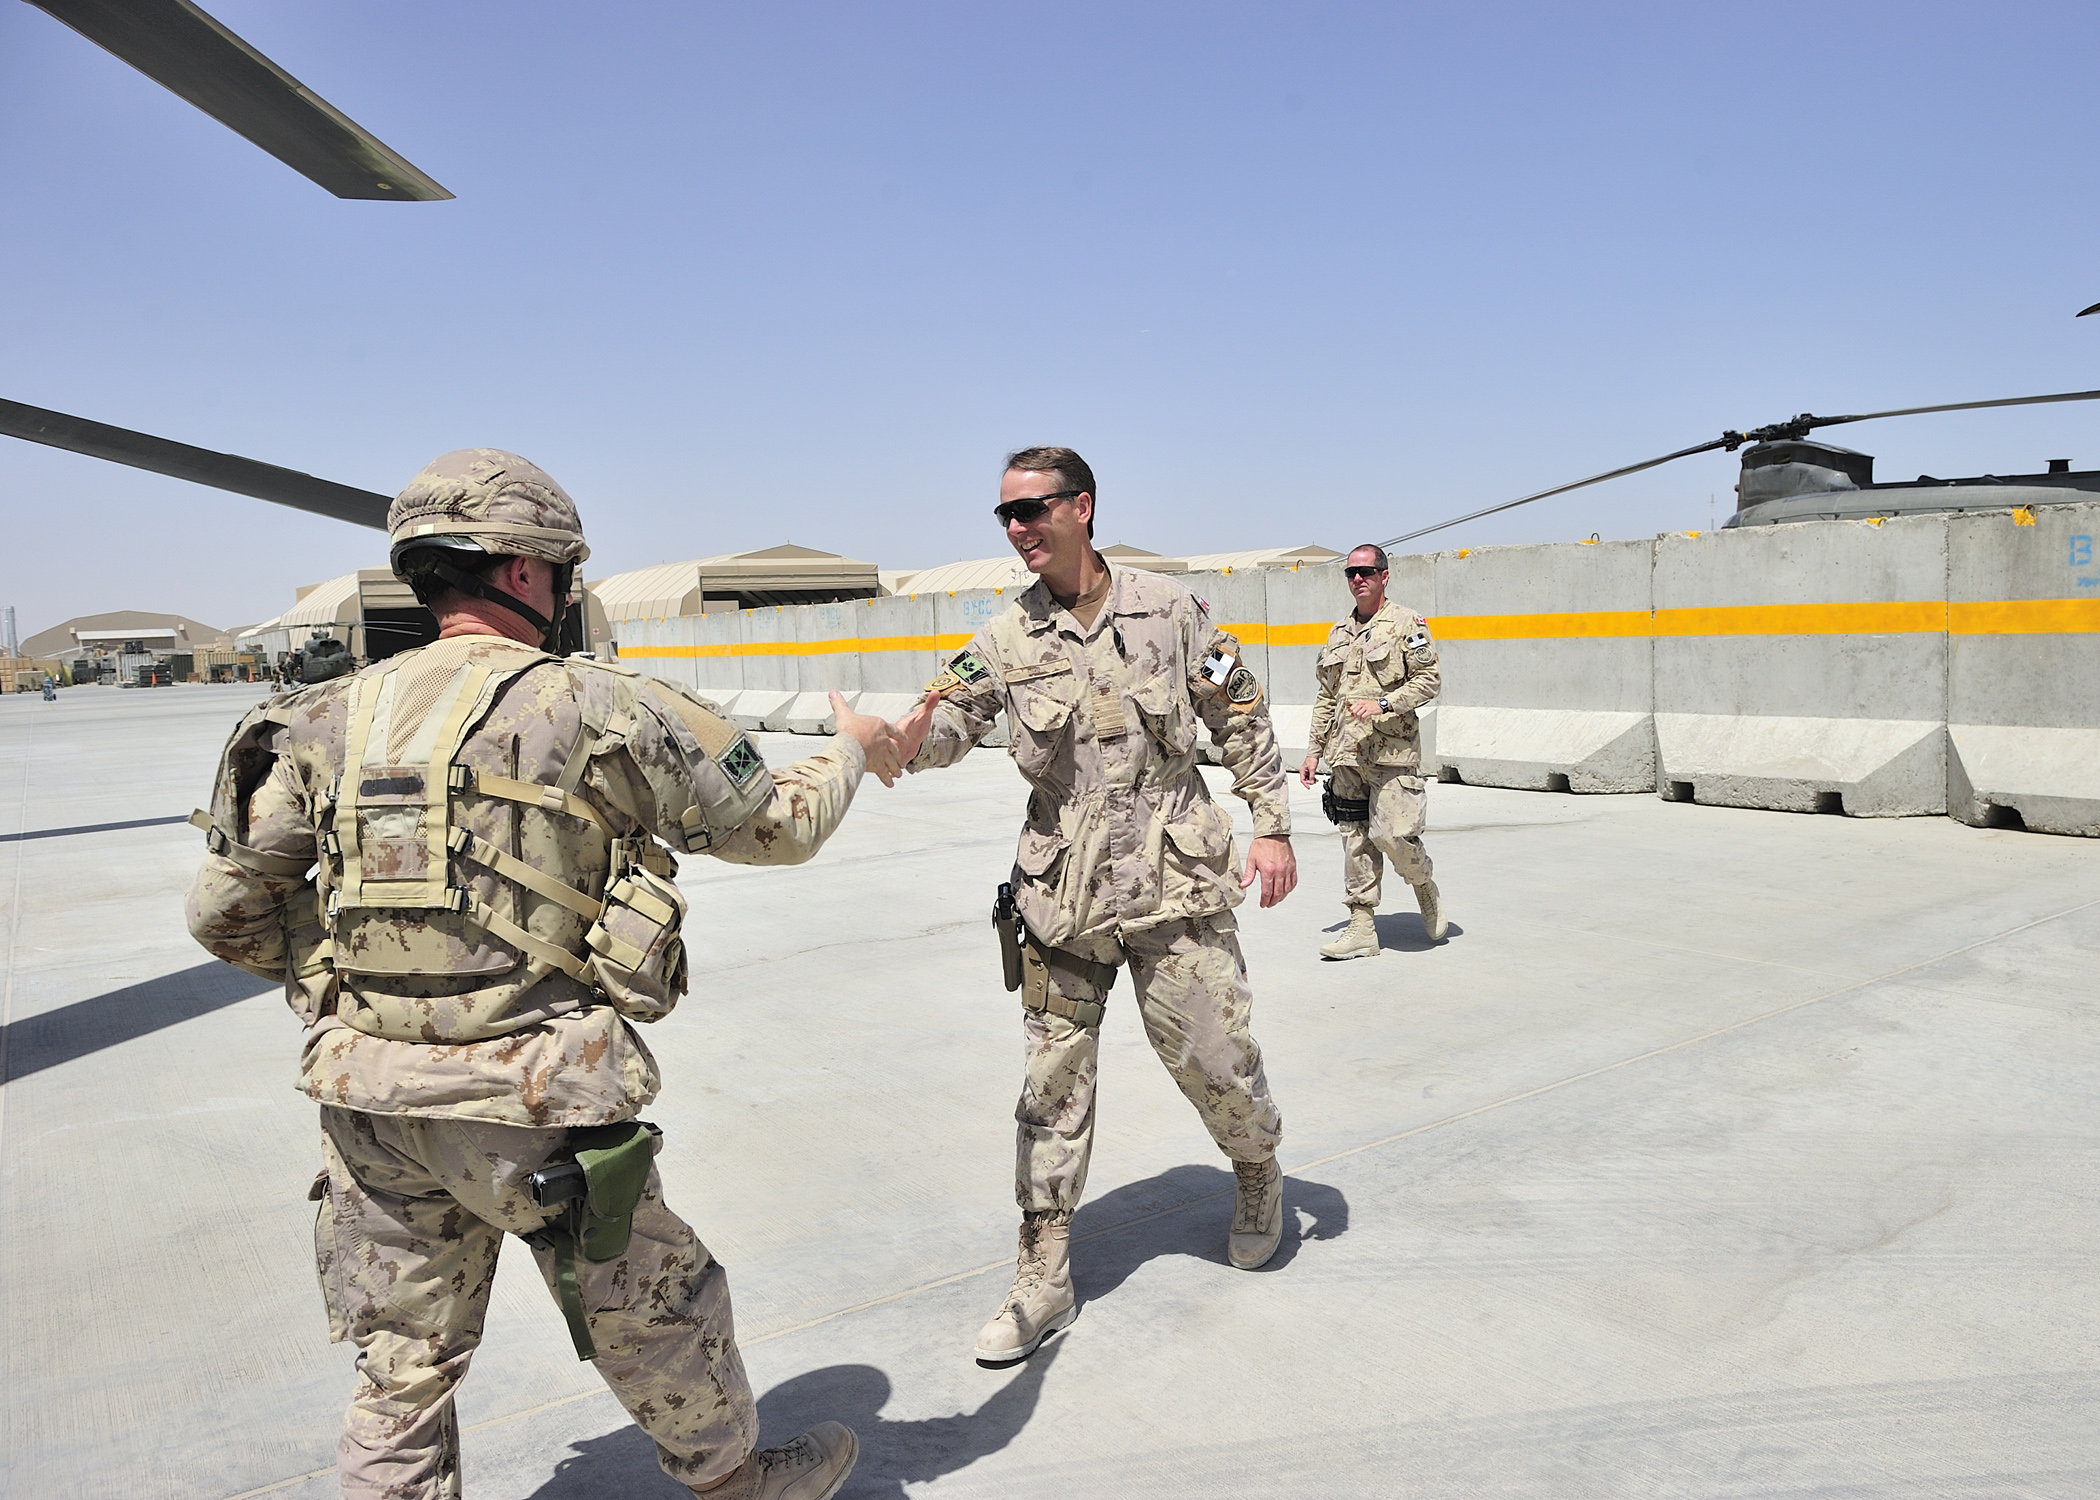 Colonel Al Meinzinger (right), commander of the Air Wing, Task Force Silver Dart, greets Brigadier-General Charles Lamarre, commander of the Mission Transition Task Force, on 22 July 22, 2011, in Kandahar, Afghanistan. On May 4, 2018, now-Lieutenant-General Meinzinger took command of the Royal Canadian Air Force. PHOTO: Master Corporal Dan Shouinard, AR2011-0294-124